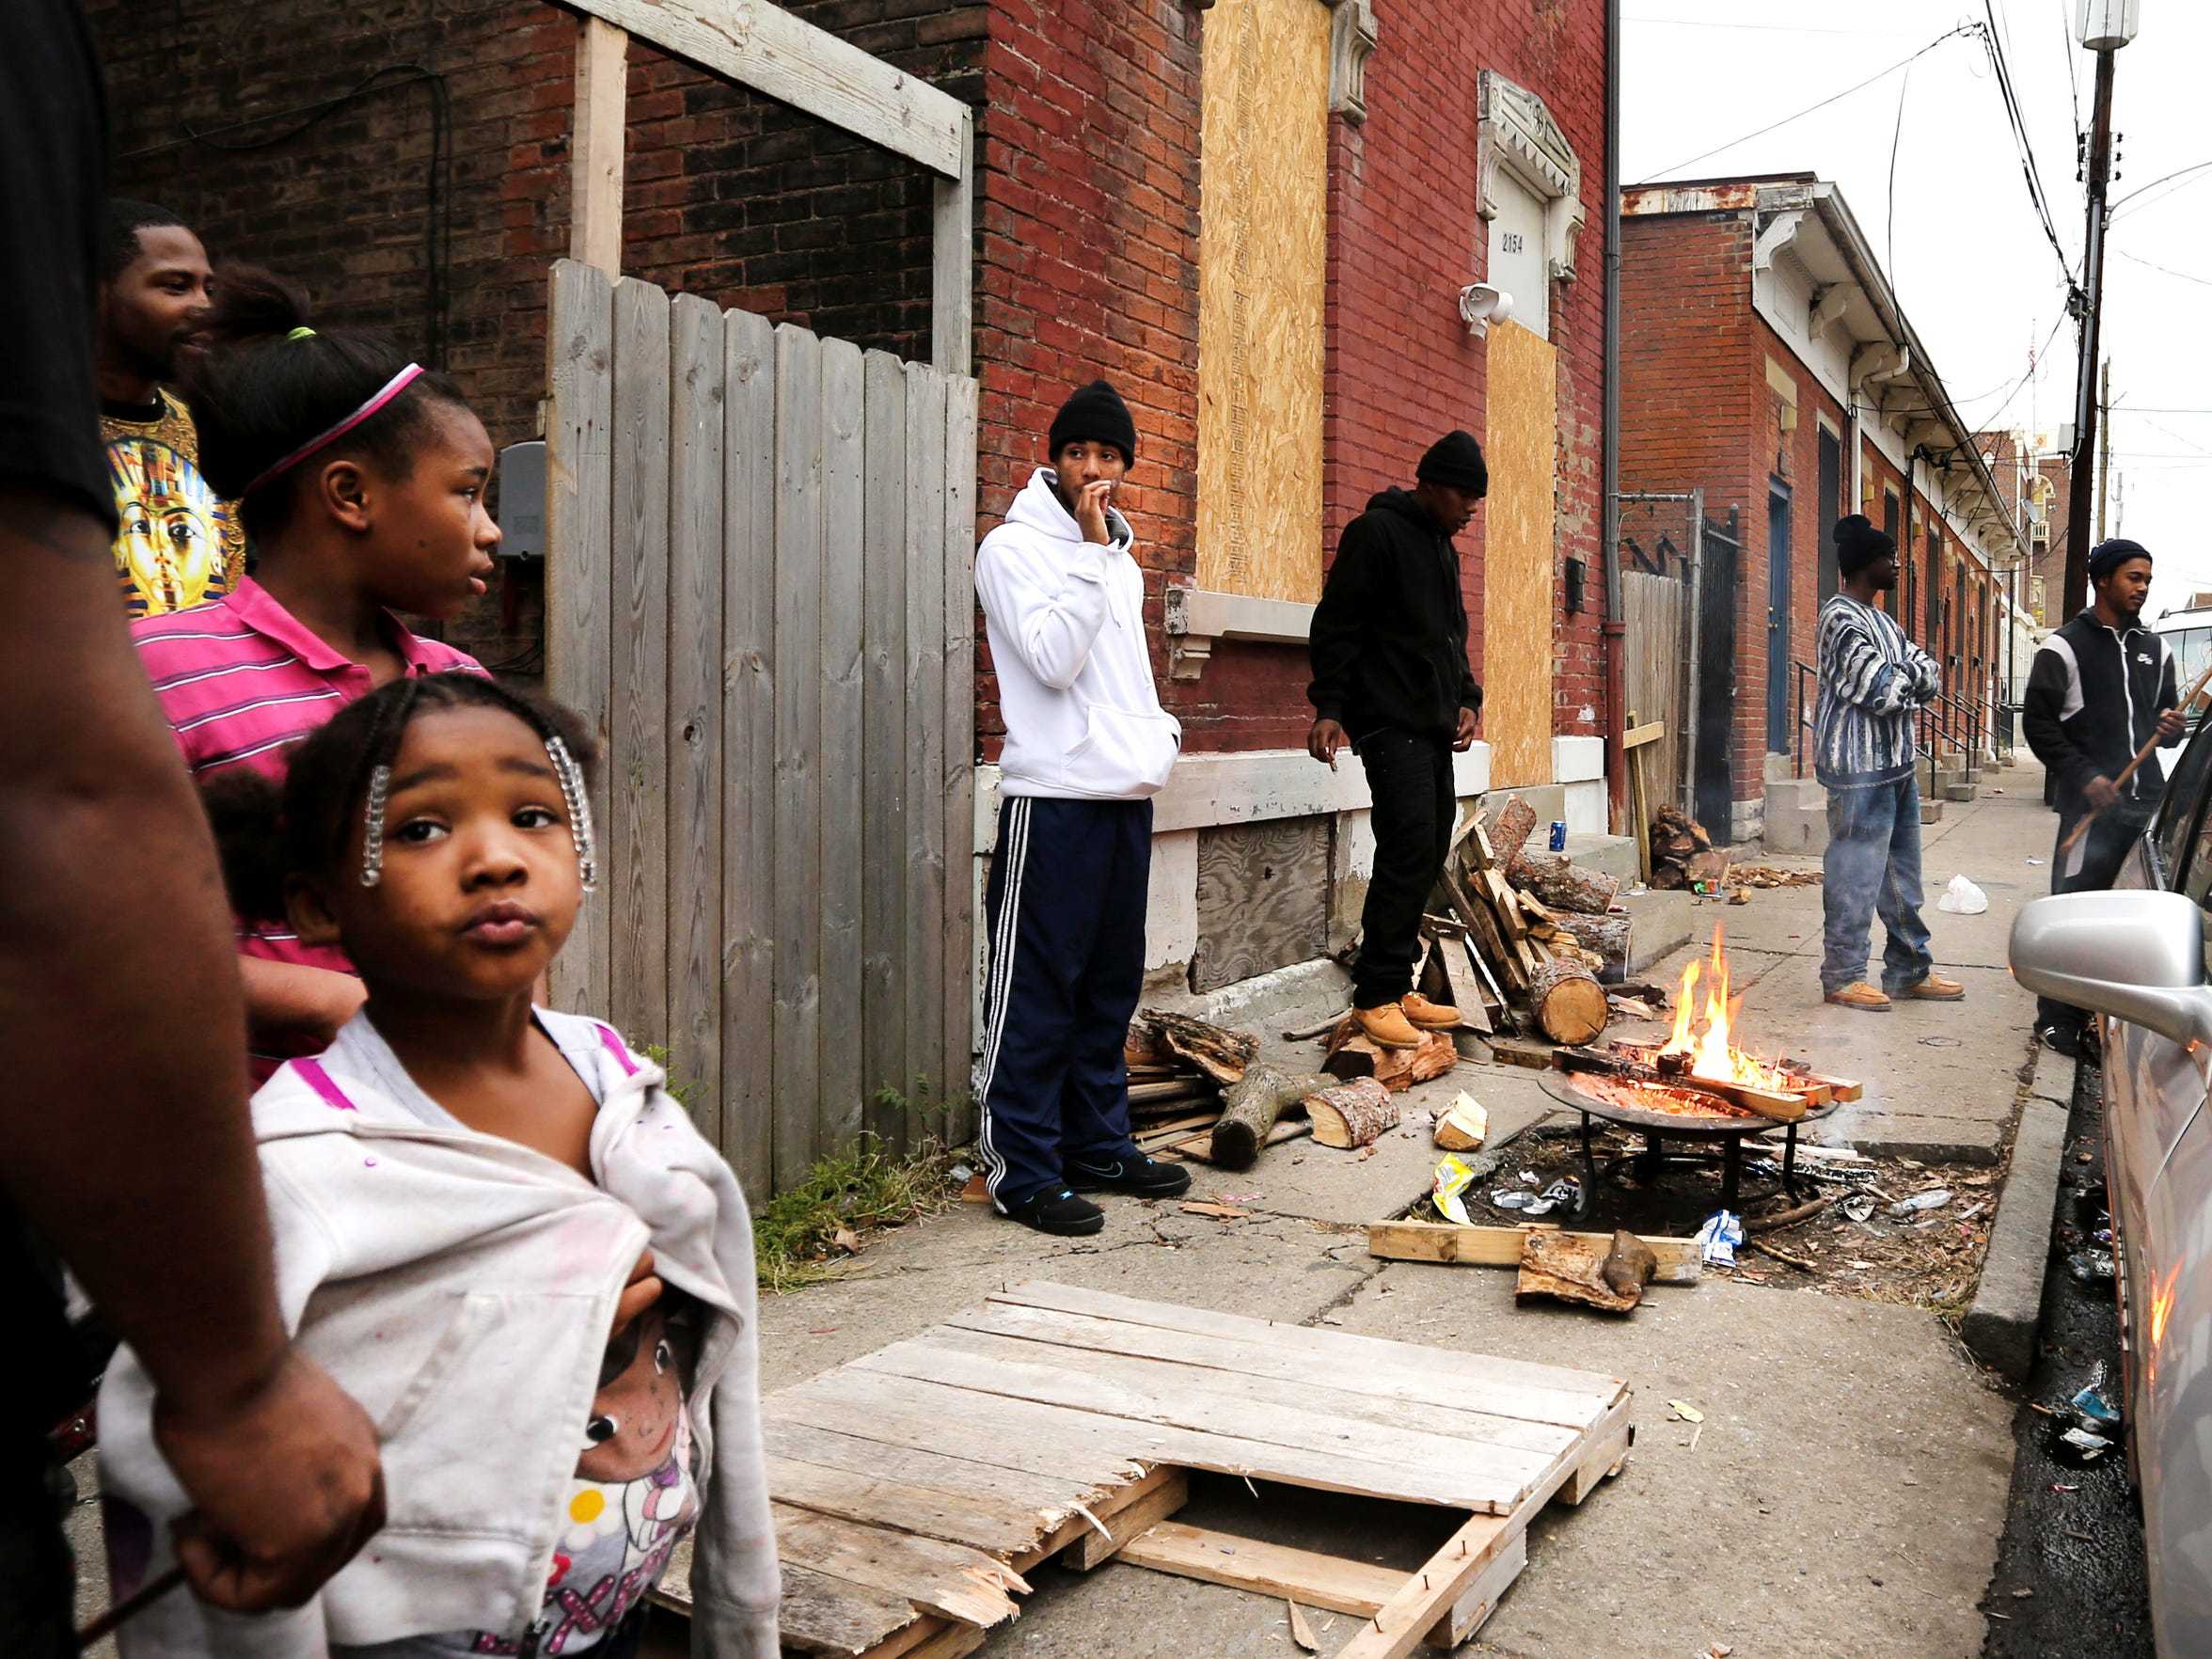 A make-shift fire pit keeps residents warm late in the day on Staebler Street in Lower Price Hill. The wood is donated and includes pieces leftover from construction projects in the area.